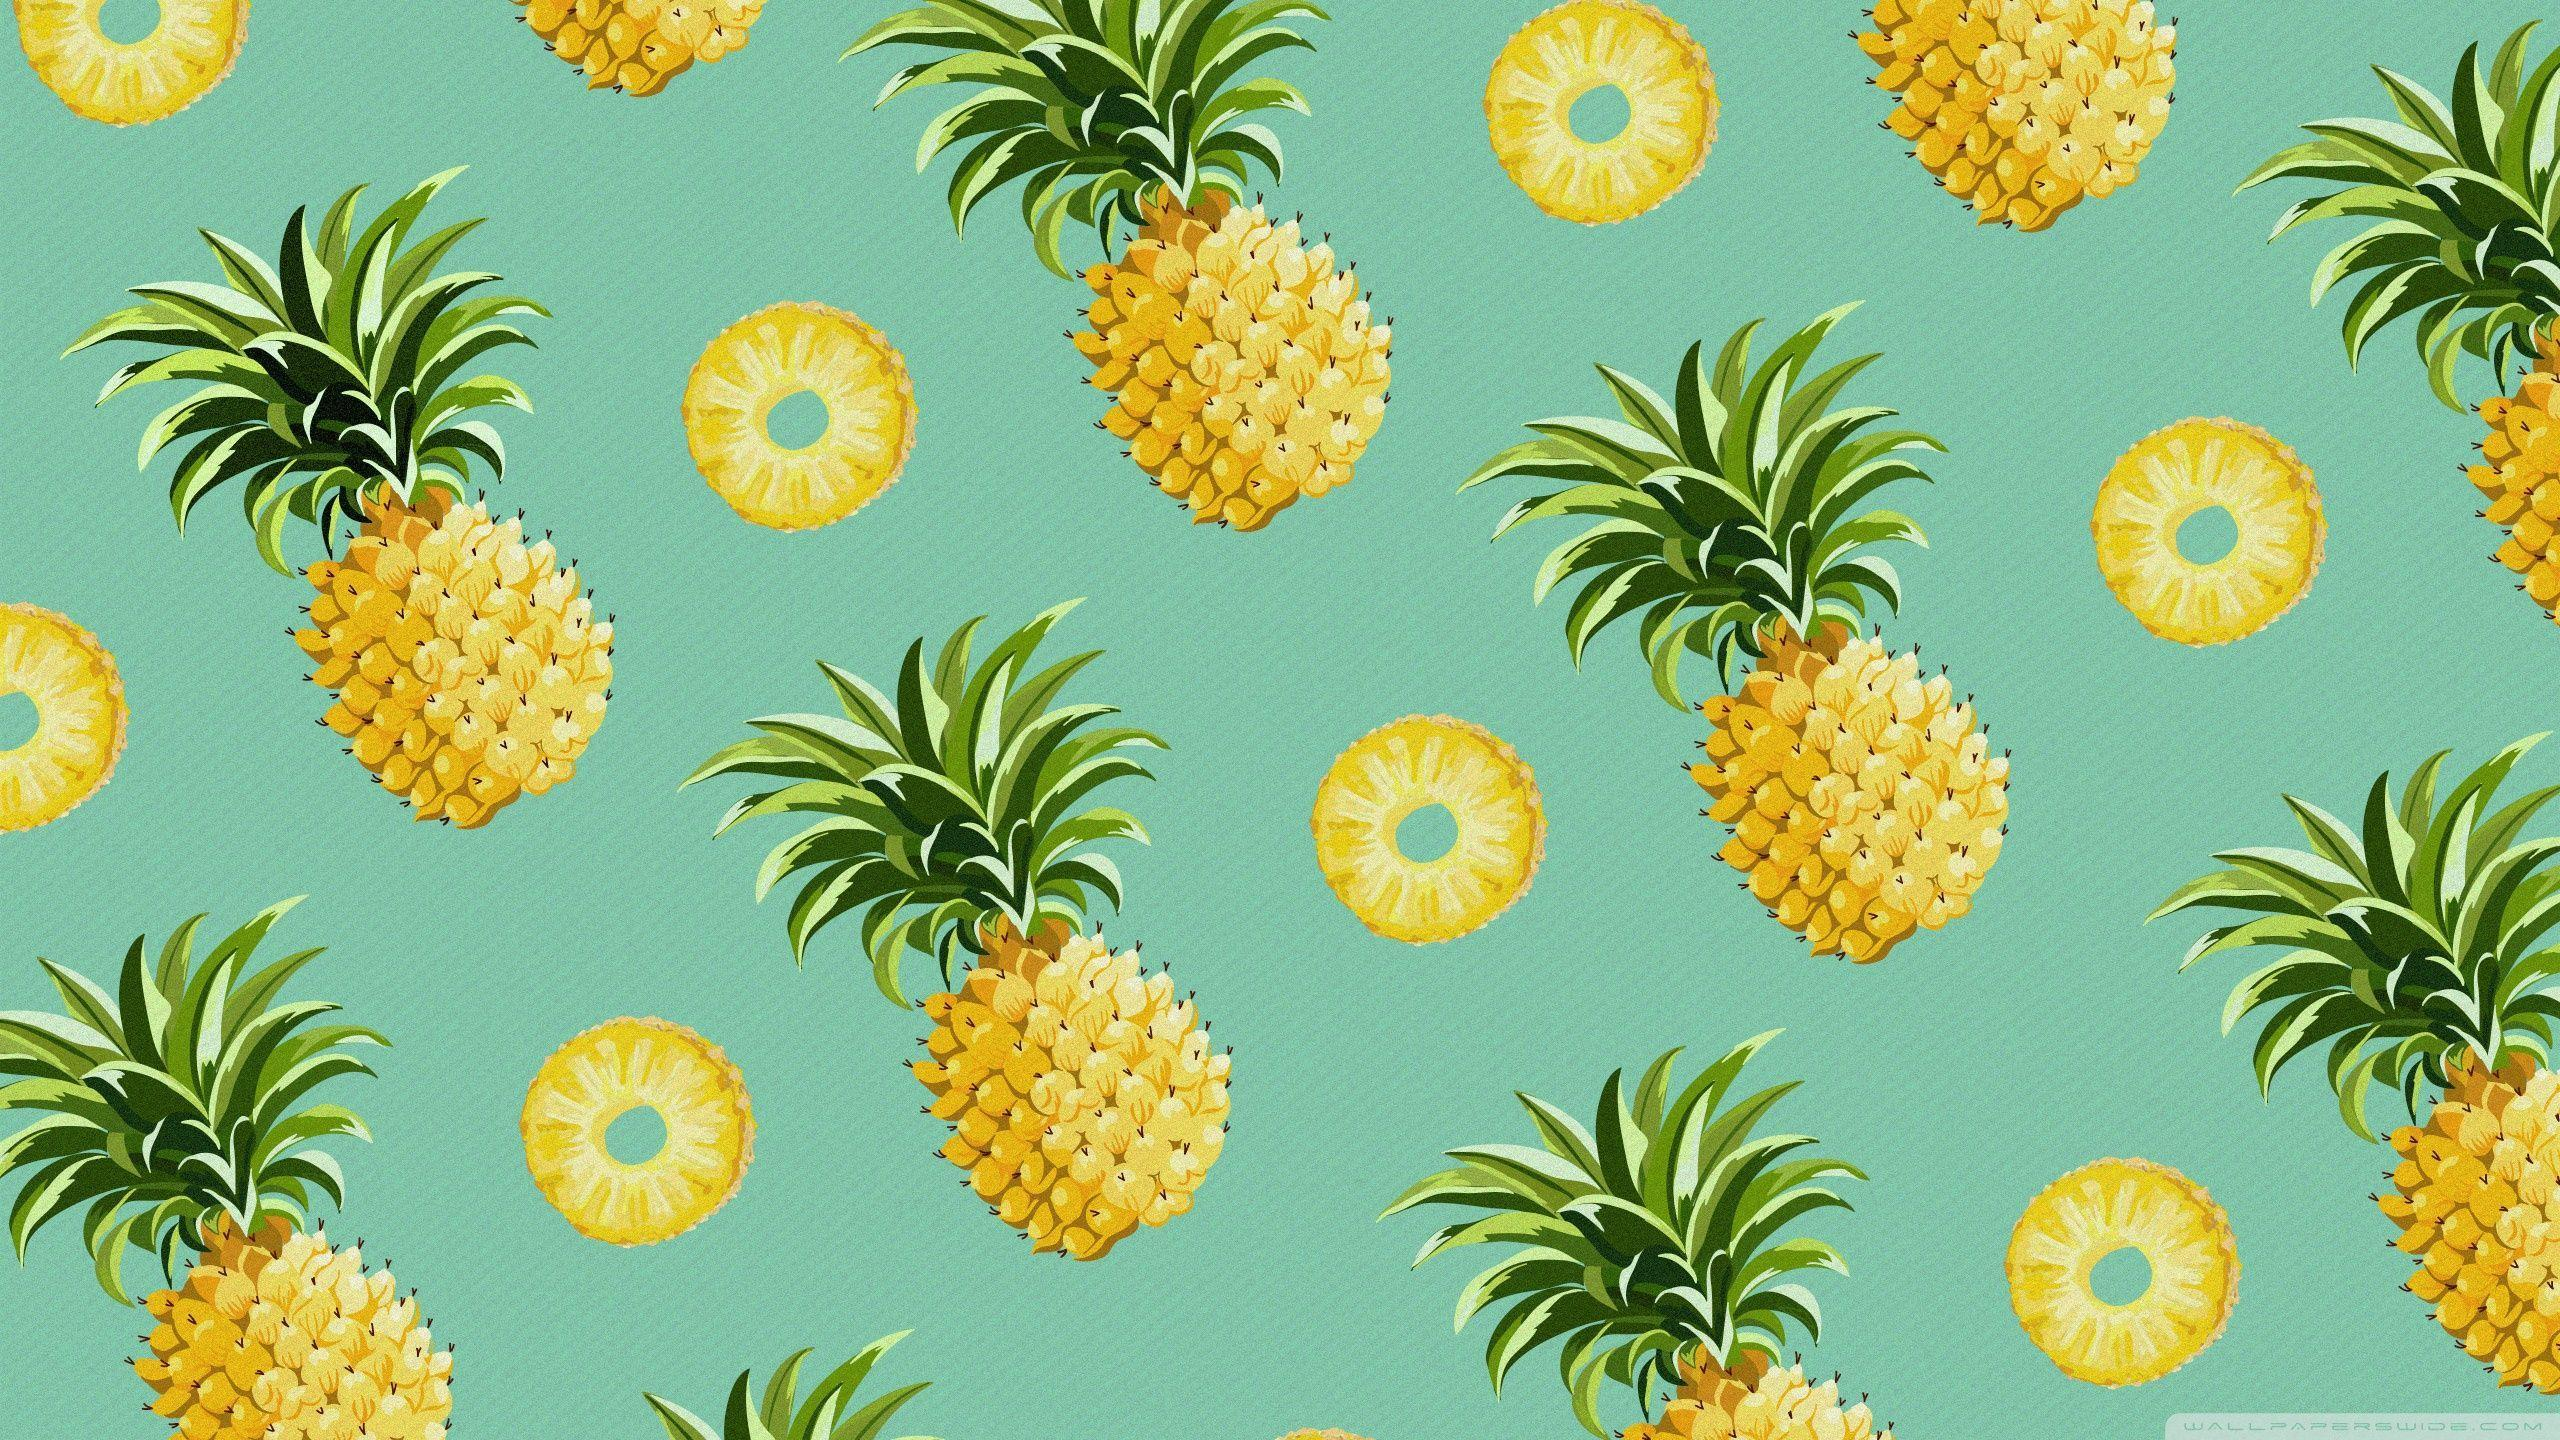 Pineapples 4K HD Desktop Wallpaper For Ultra TV O Dual